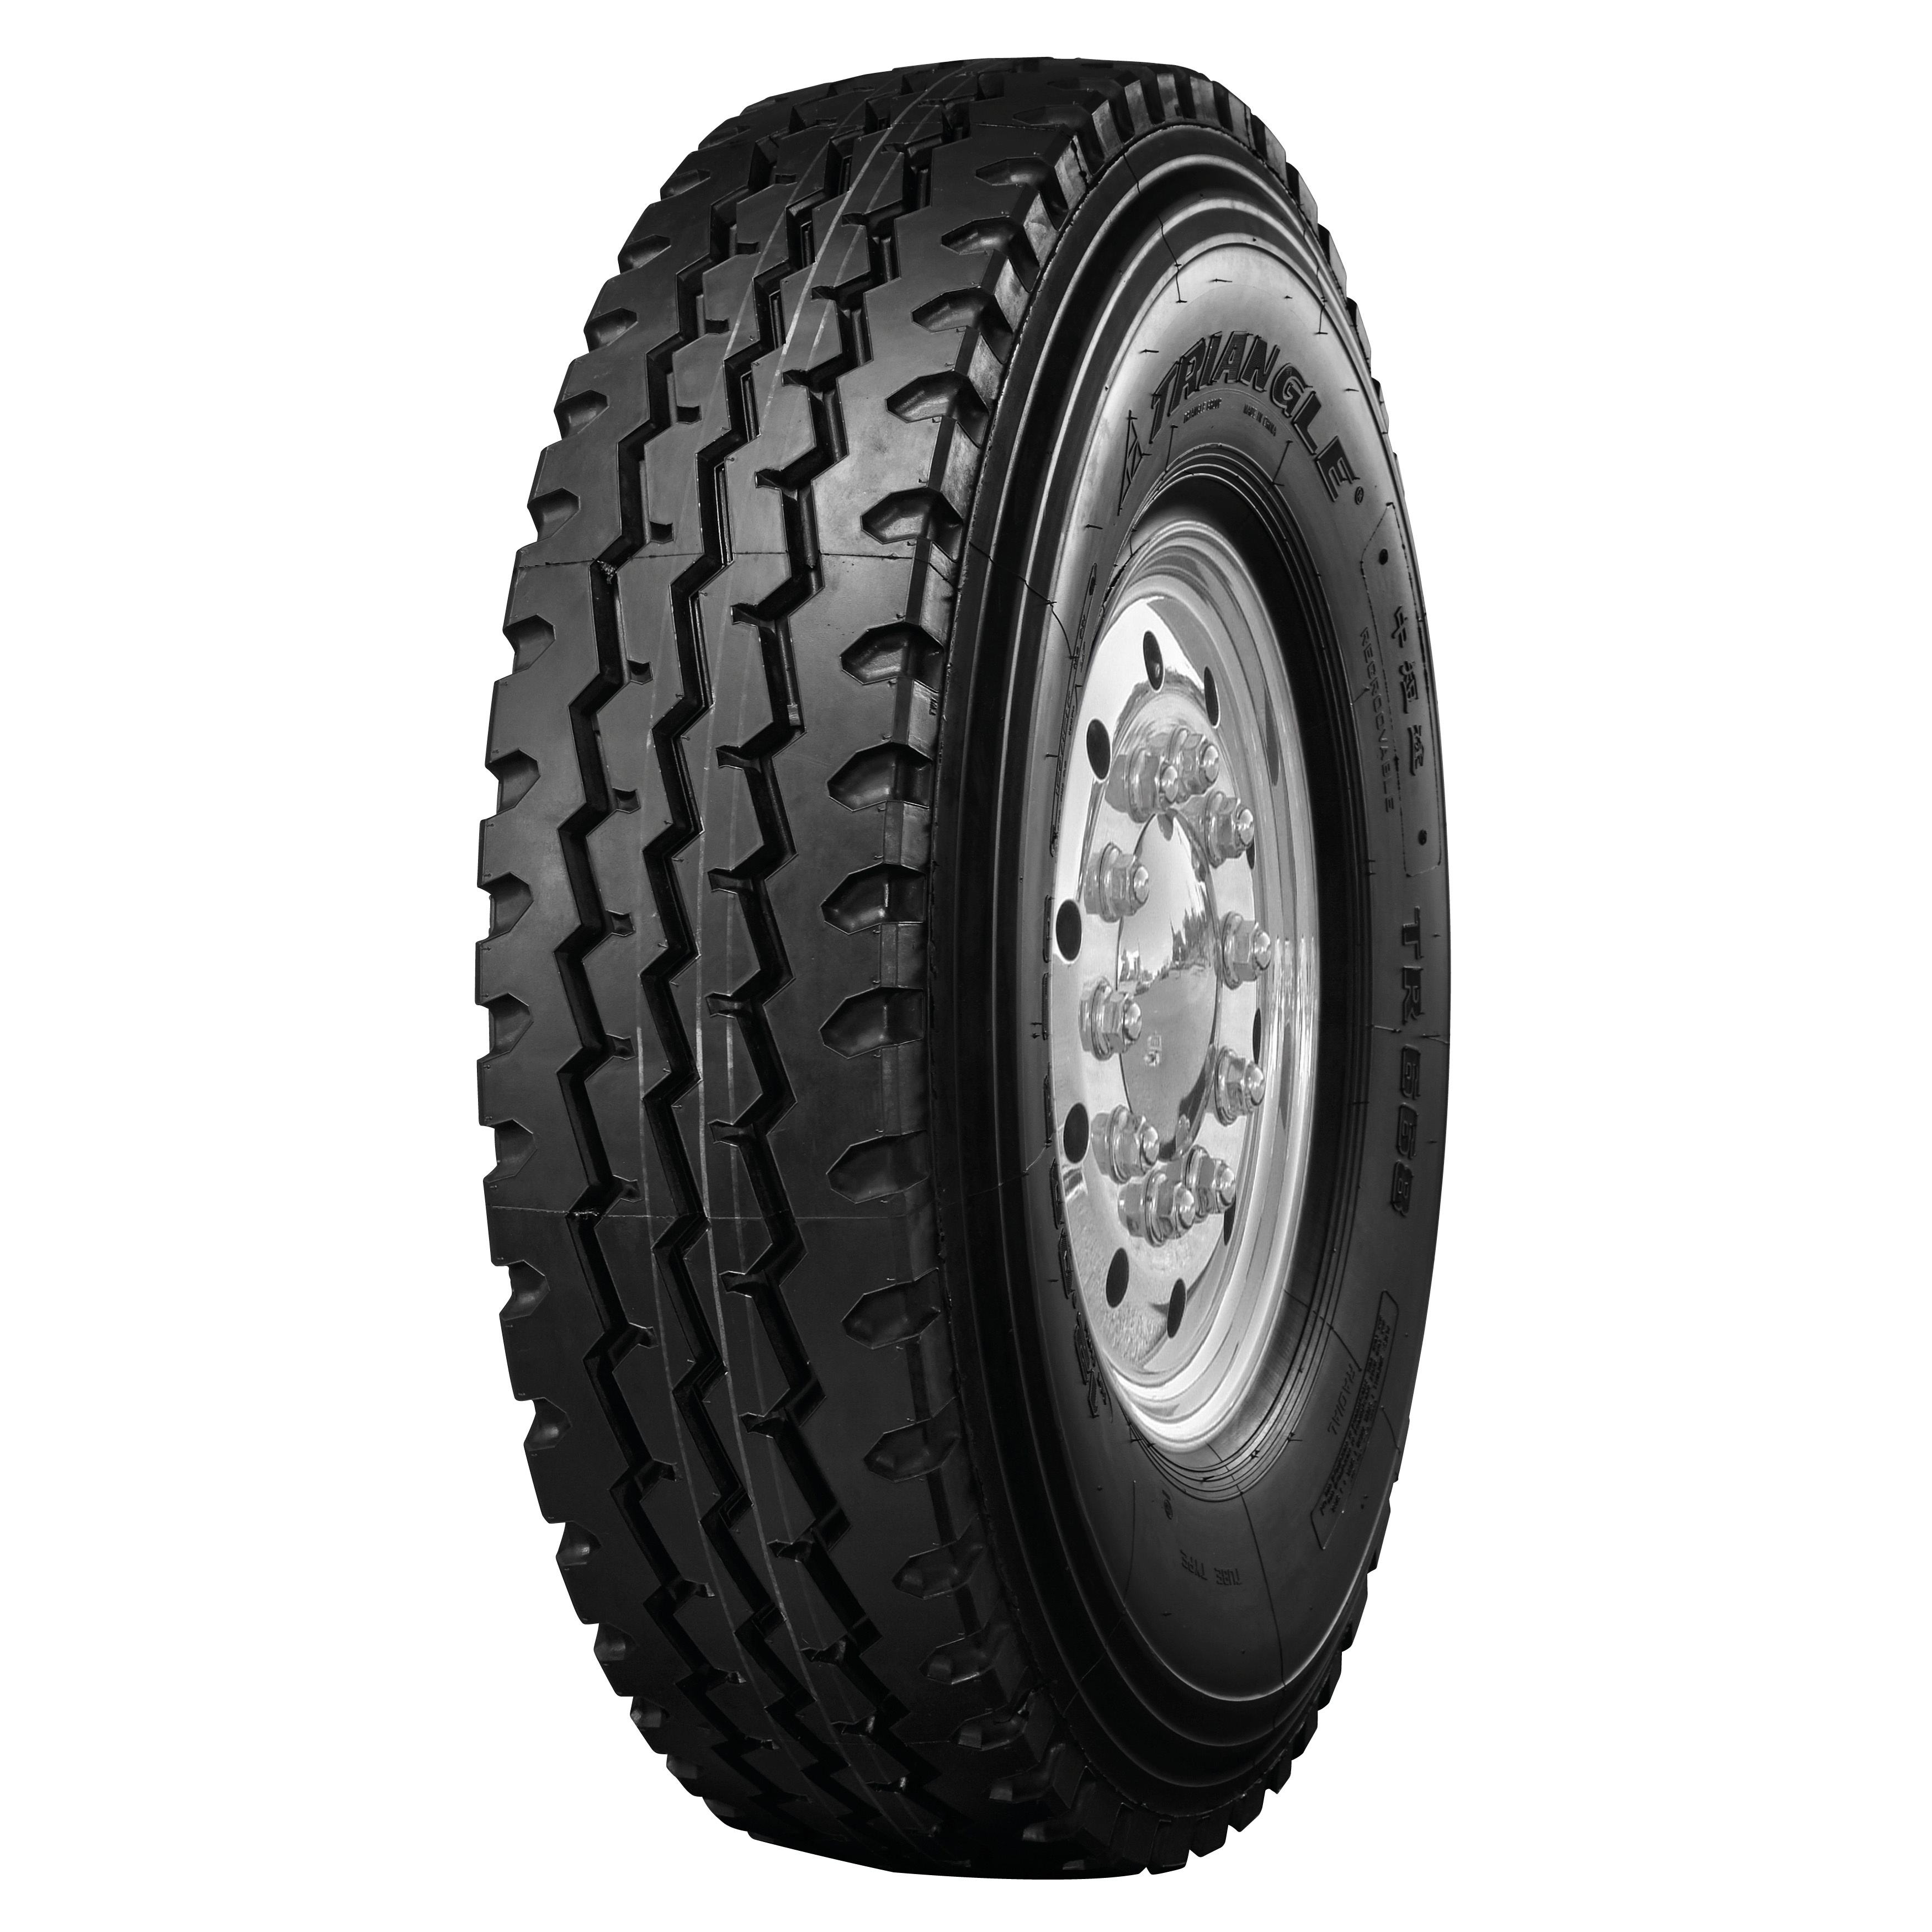 11R22.5 truck tires heavy duty use Triangle TR666/TR668/TR688 Factory direct sales